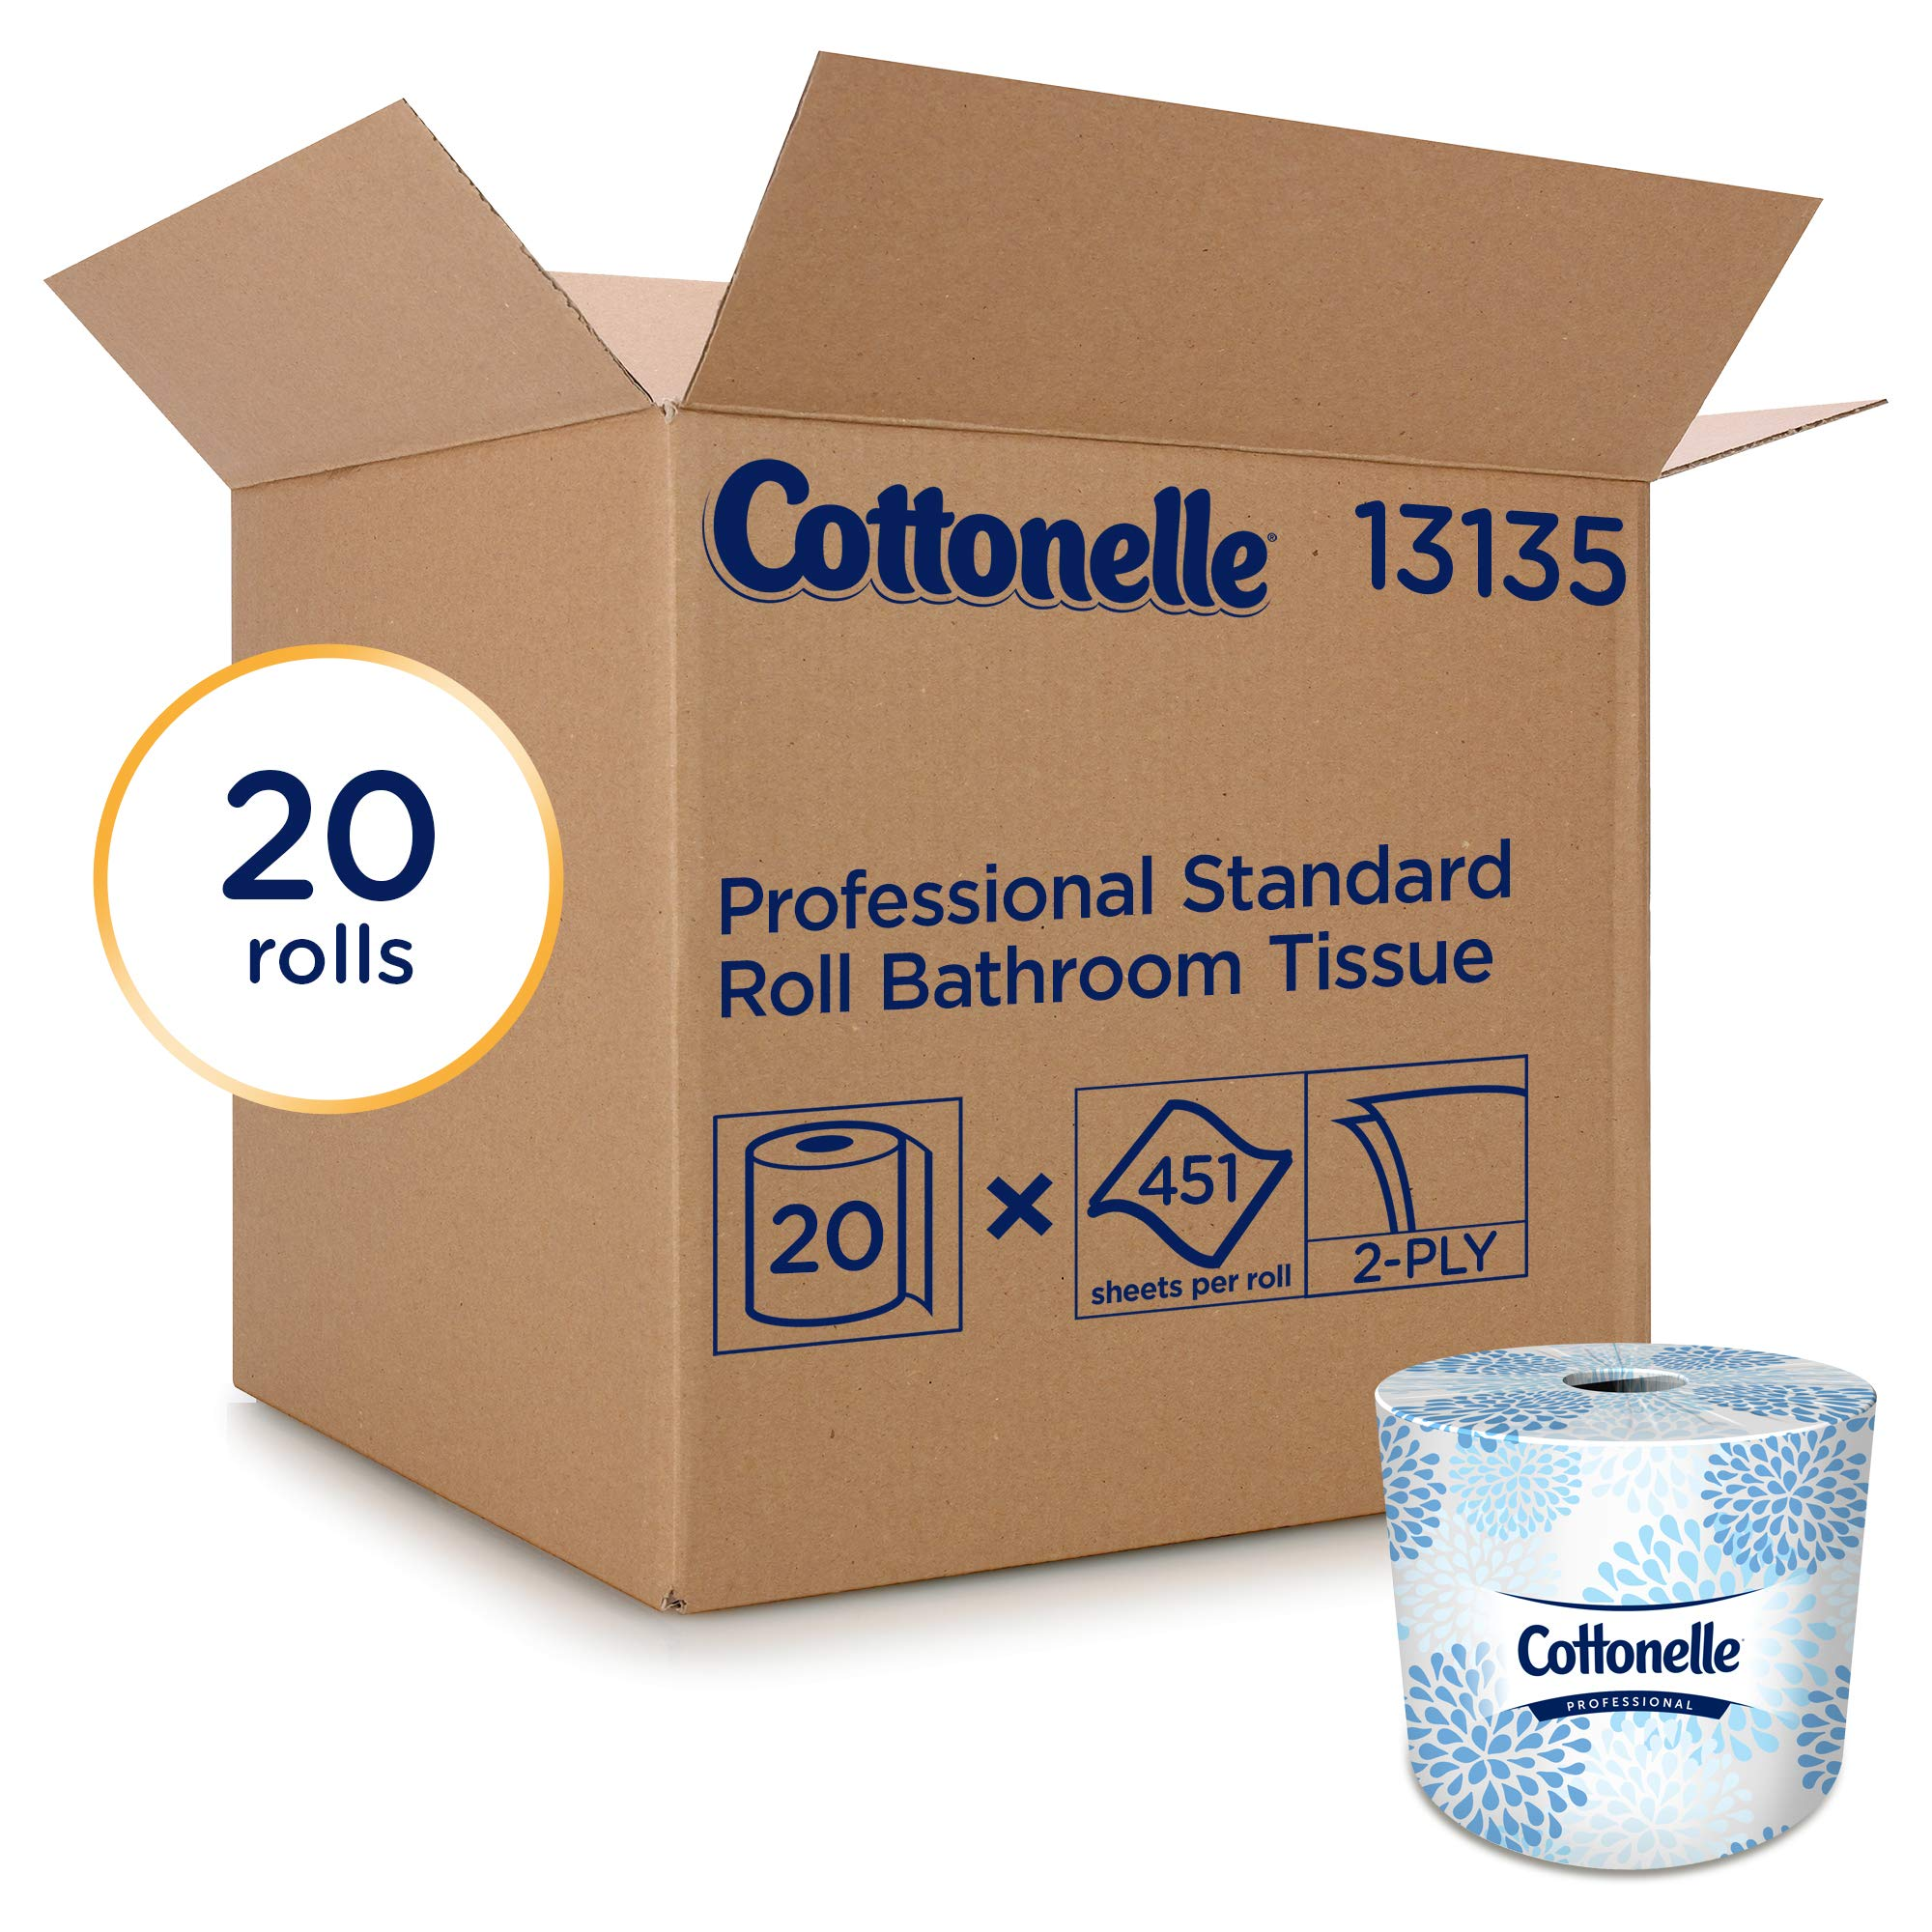 Cottonelle 13135 Two-Ply Bathroom Tissue, 451 Sheets per Roll (Case of 20 Rolls) by Cottonelle